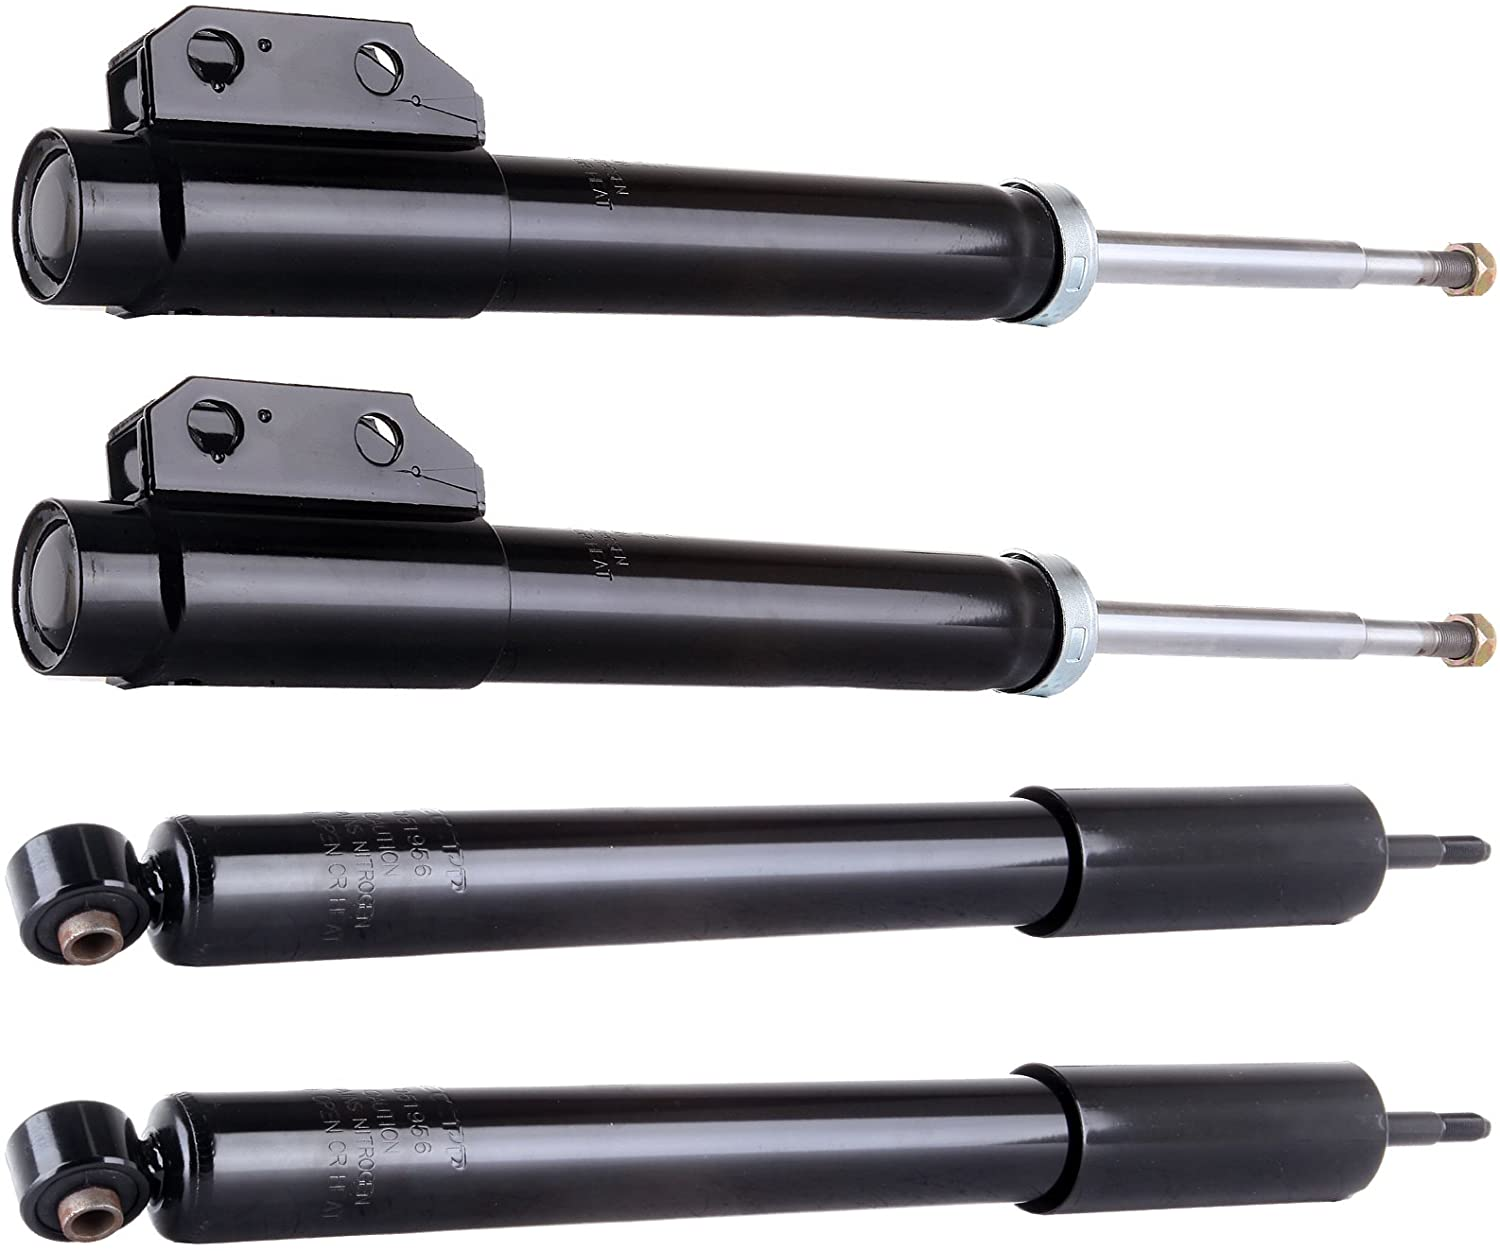 ANGLEWIDE Front Rear Auto Shocks Absorber Stuts Fits 1994-2004 ford Mustang 4x with 344433 235060